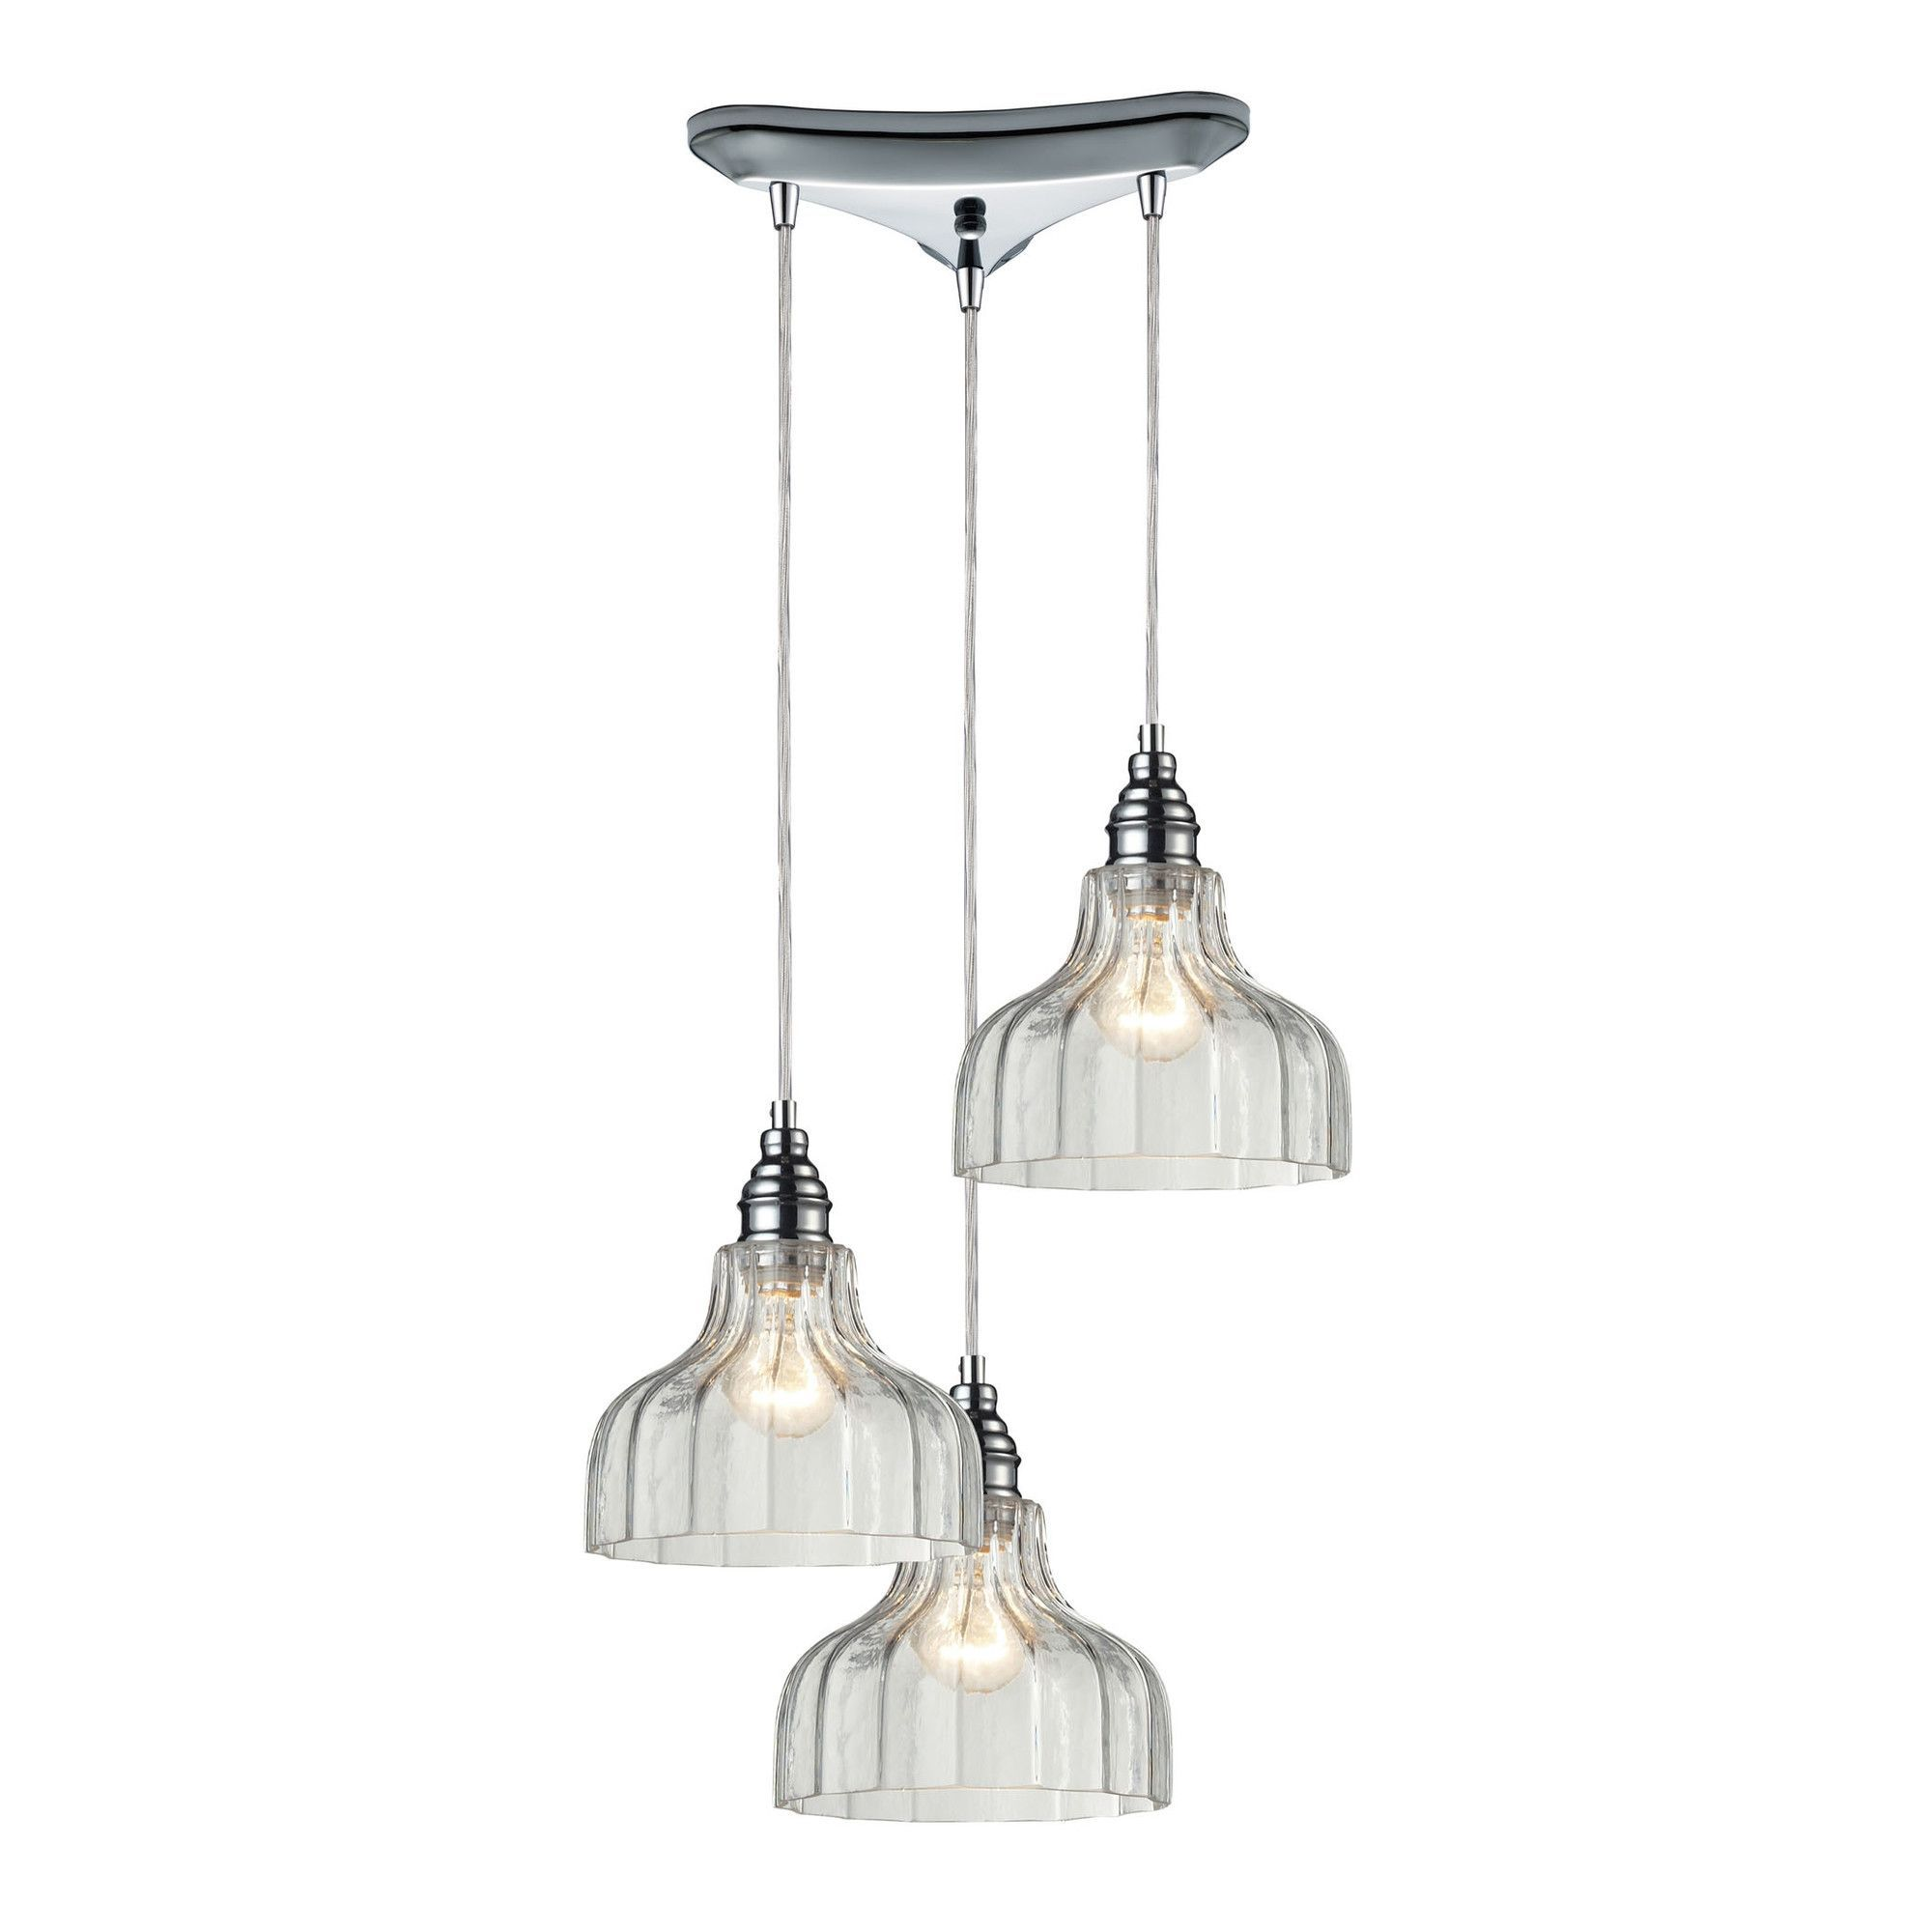 Fas prima light kitchen island pendant products pinterest